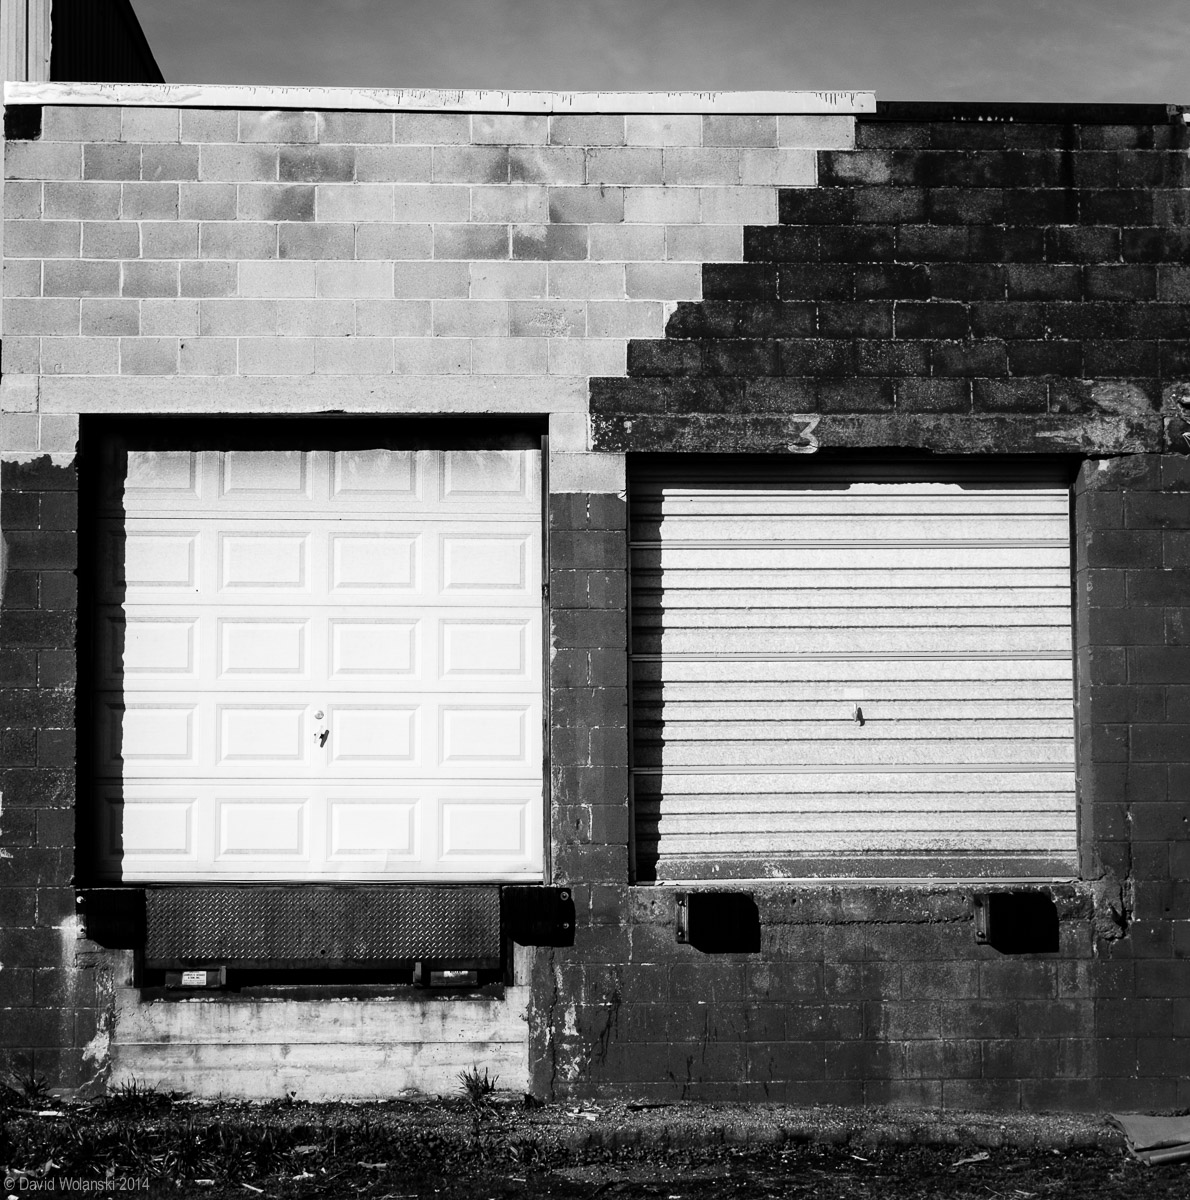 Garage doors and cement block make interesting patterns